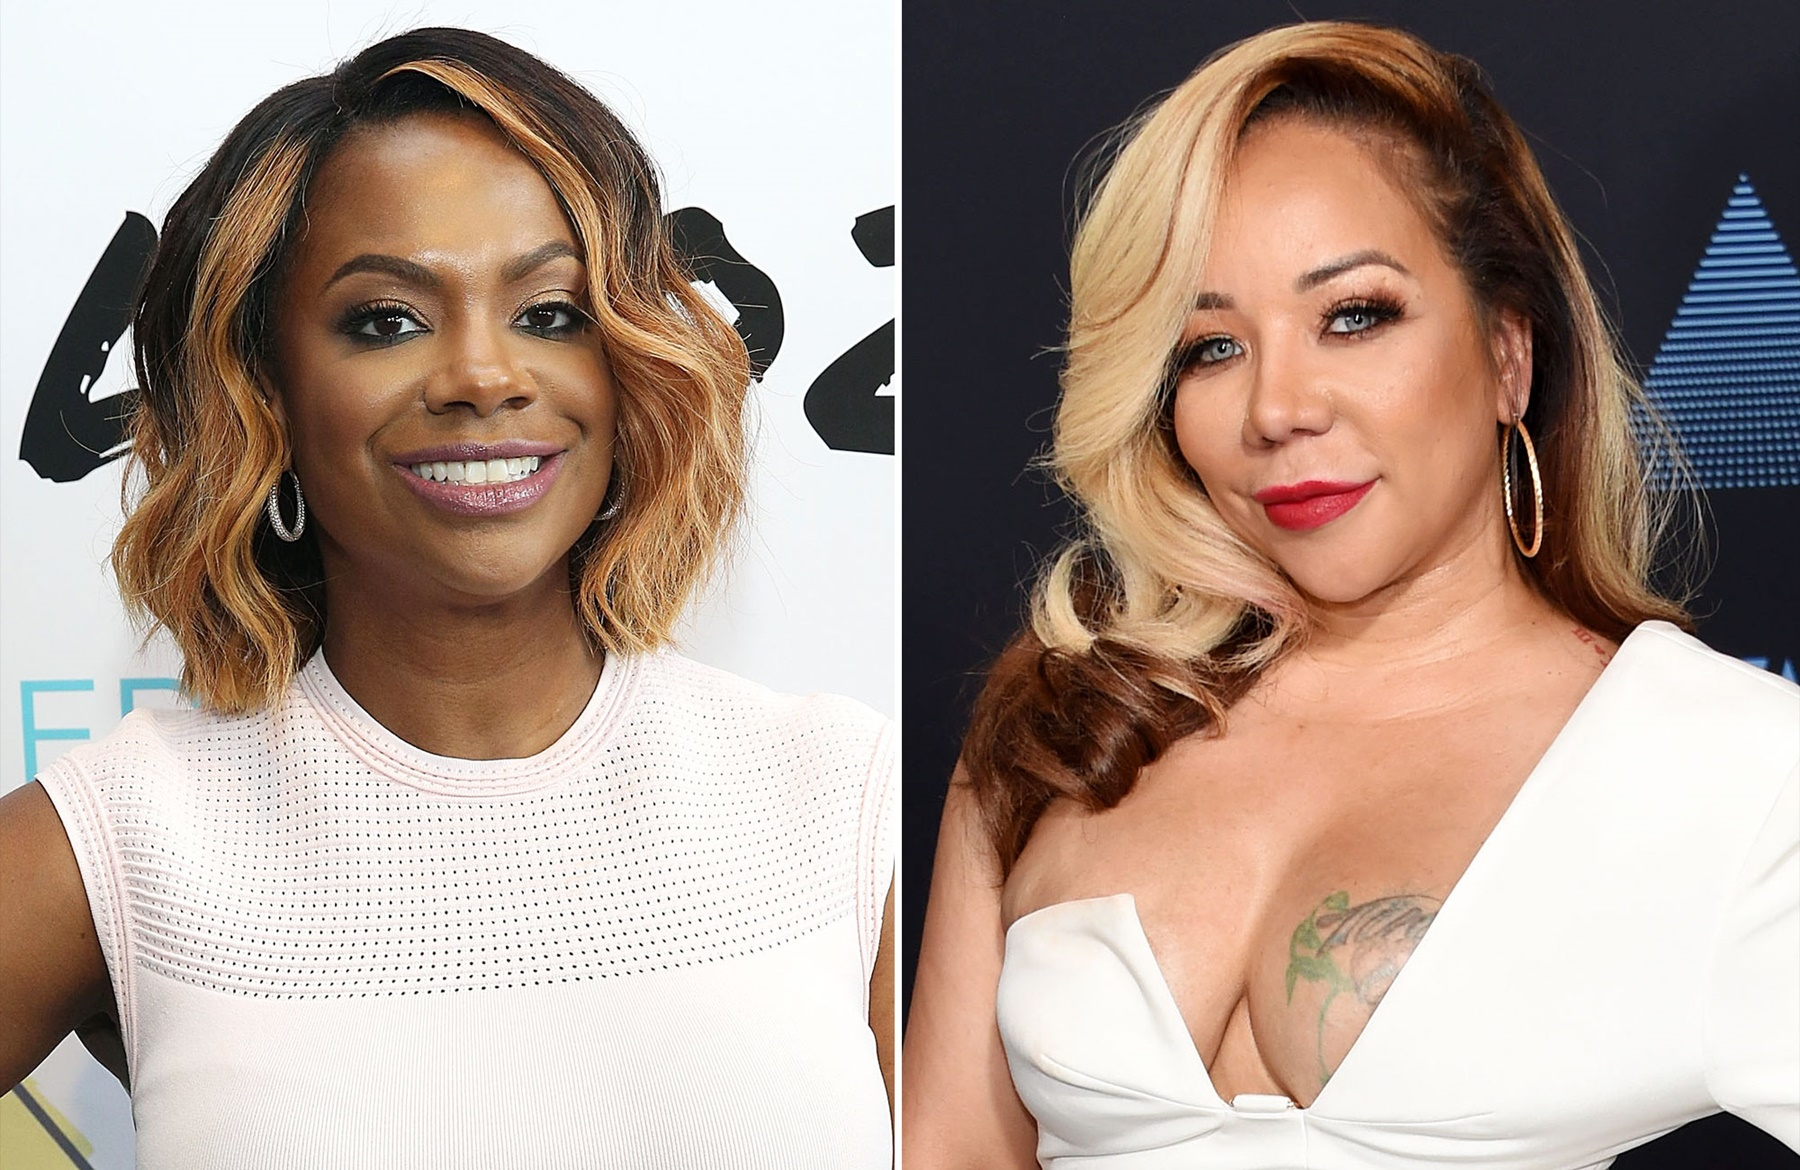 kandi-burruss-confesses-to-fighting-with-a-pregnant-tiny-harris-in-viral-video-and-does-not-regret-it-she-also-got-in-a-beatdown-with-another-famous-singer